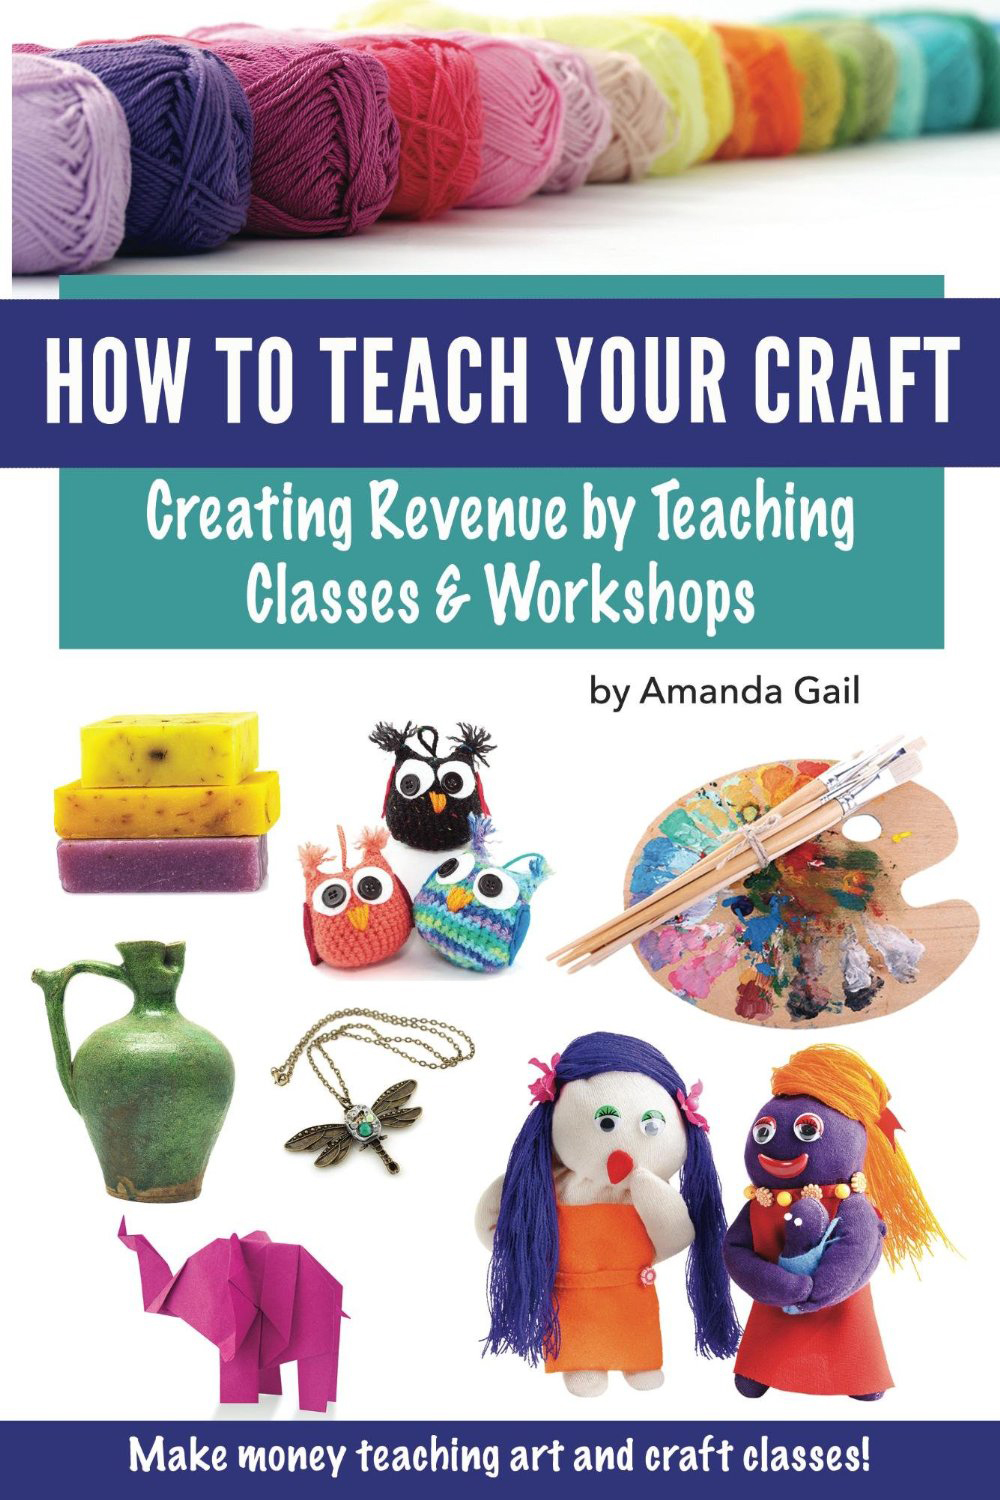 How to Teach Your Craft - Book